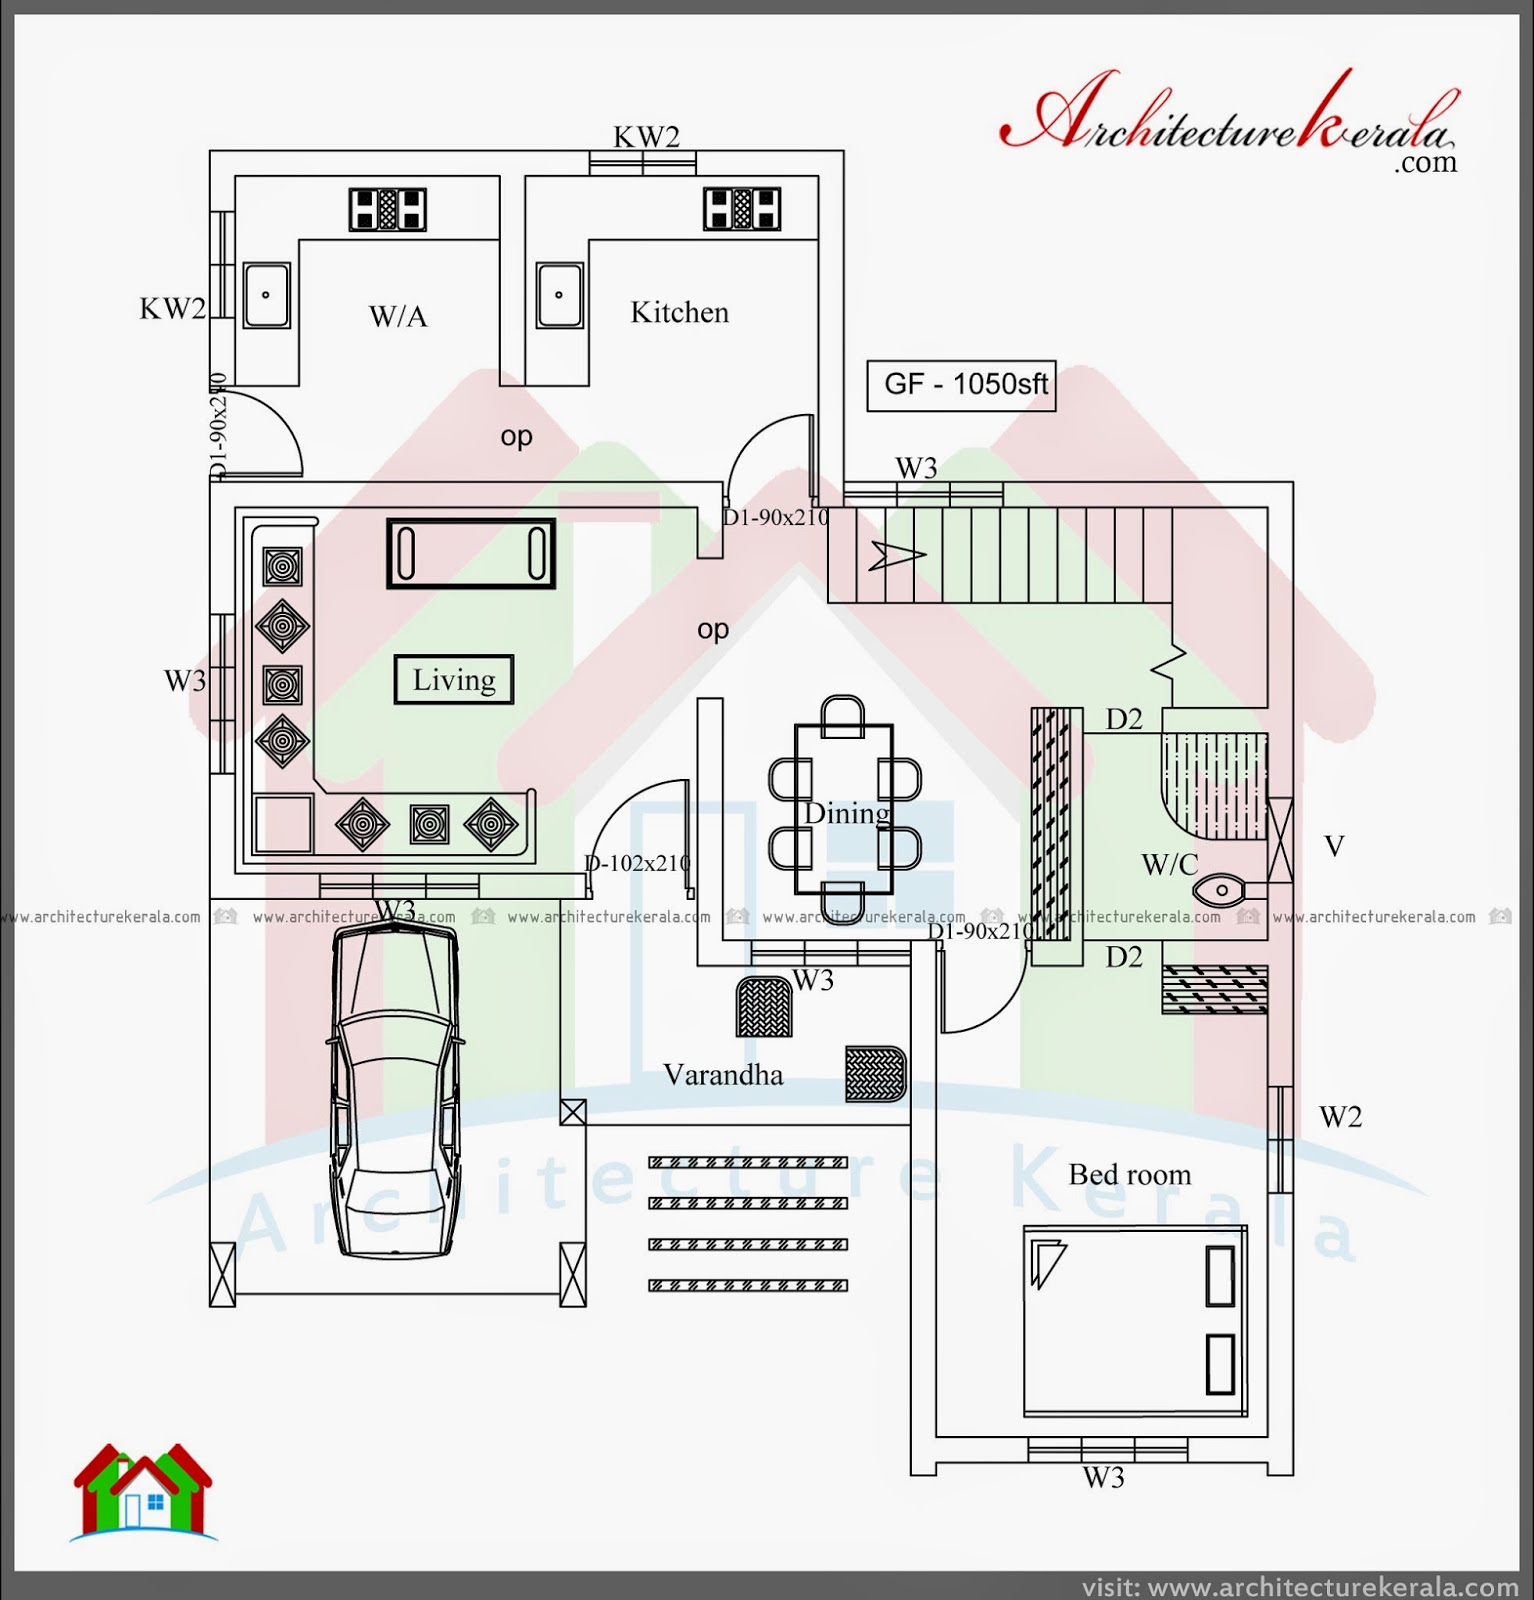 Three bedroom two storey house plan architecture kerala for 2 story house plans 3 bedroom